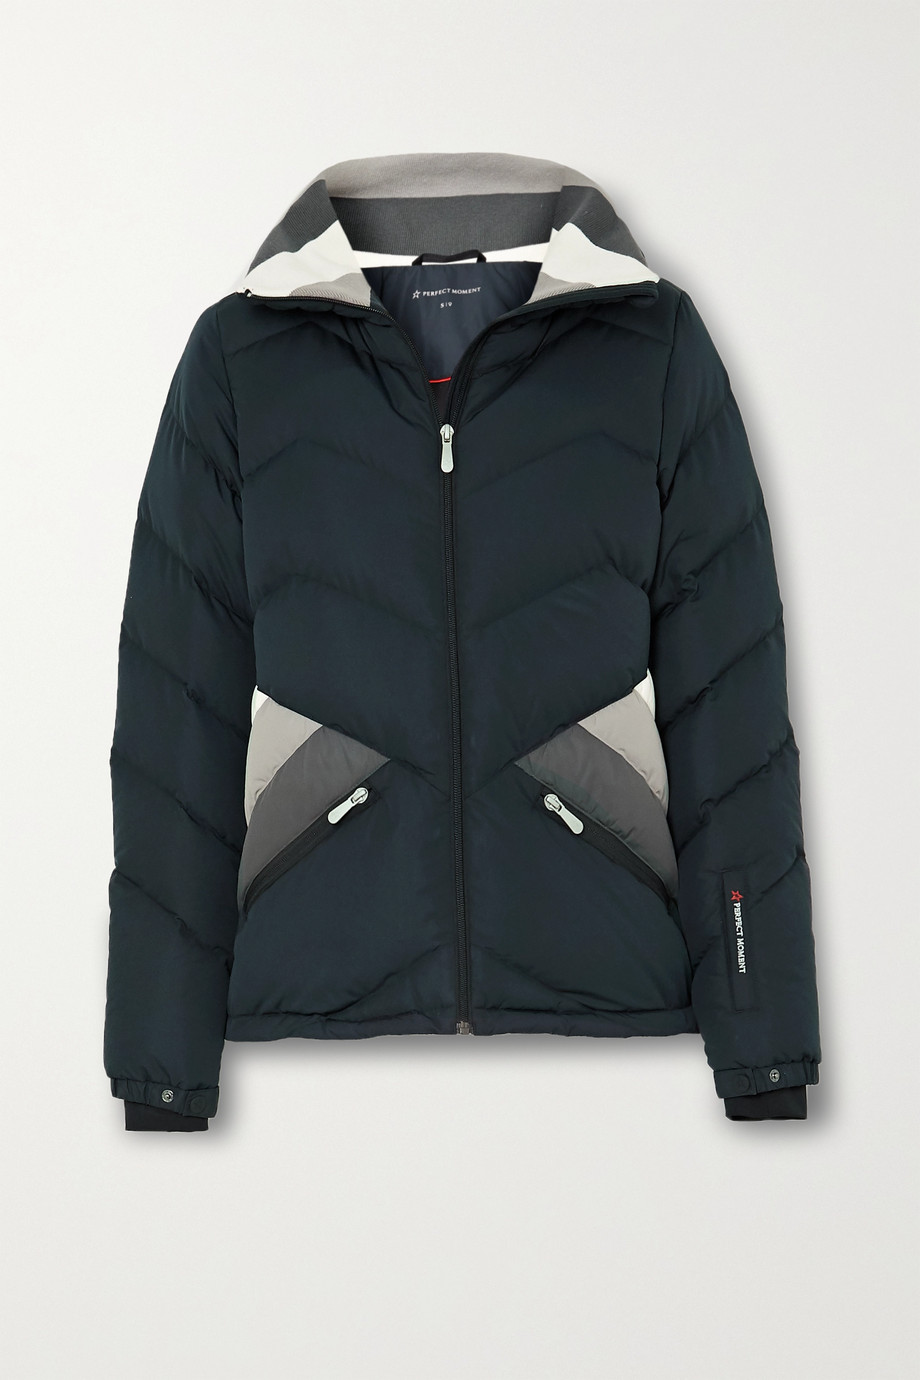 Perfect Moment Apres Duvet striped quilted down ski jacket